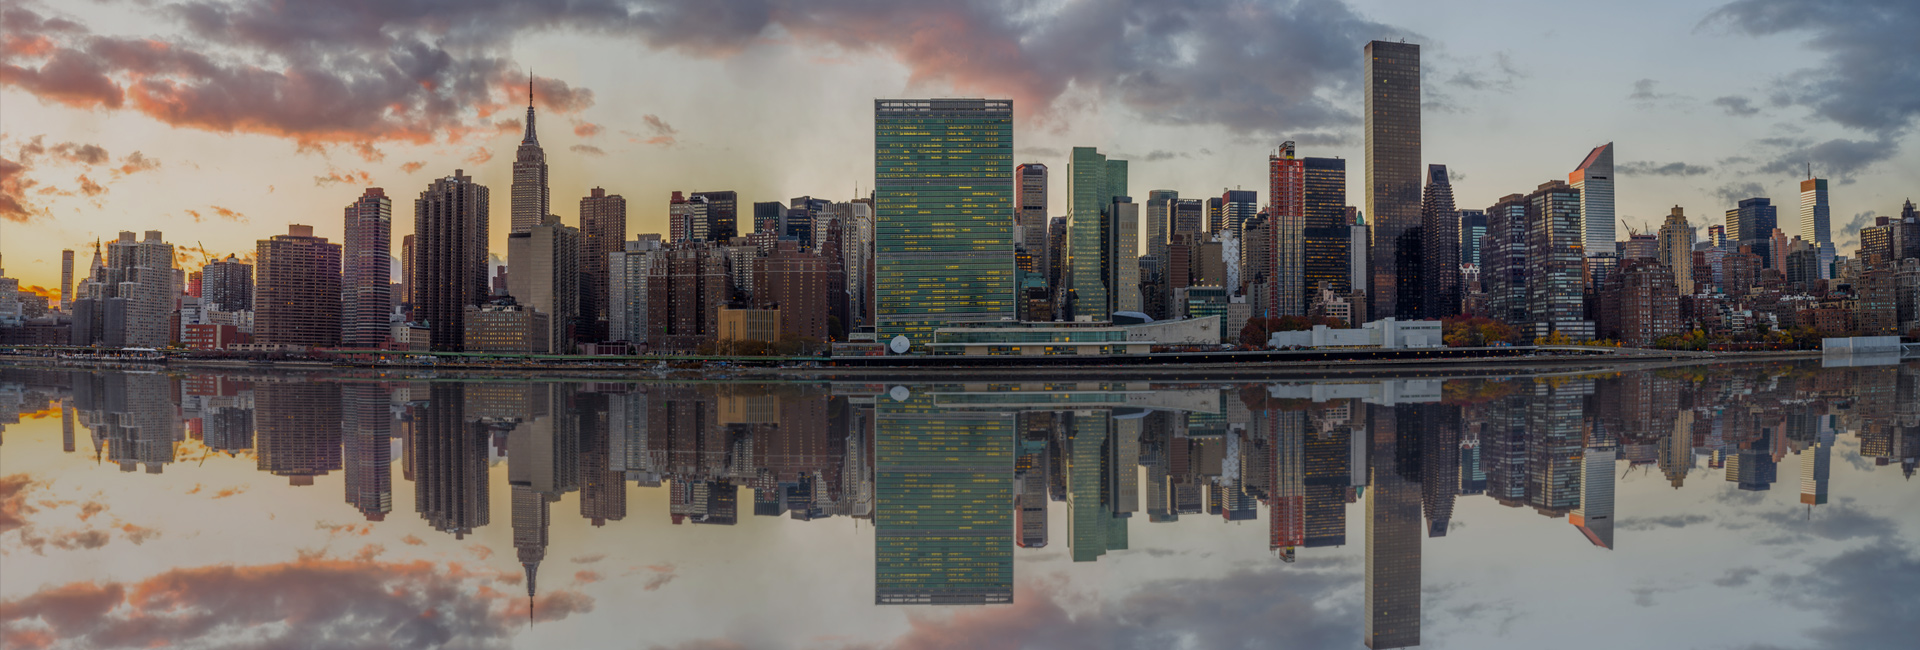 Reflection of City Skyline New York